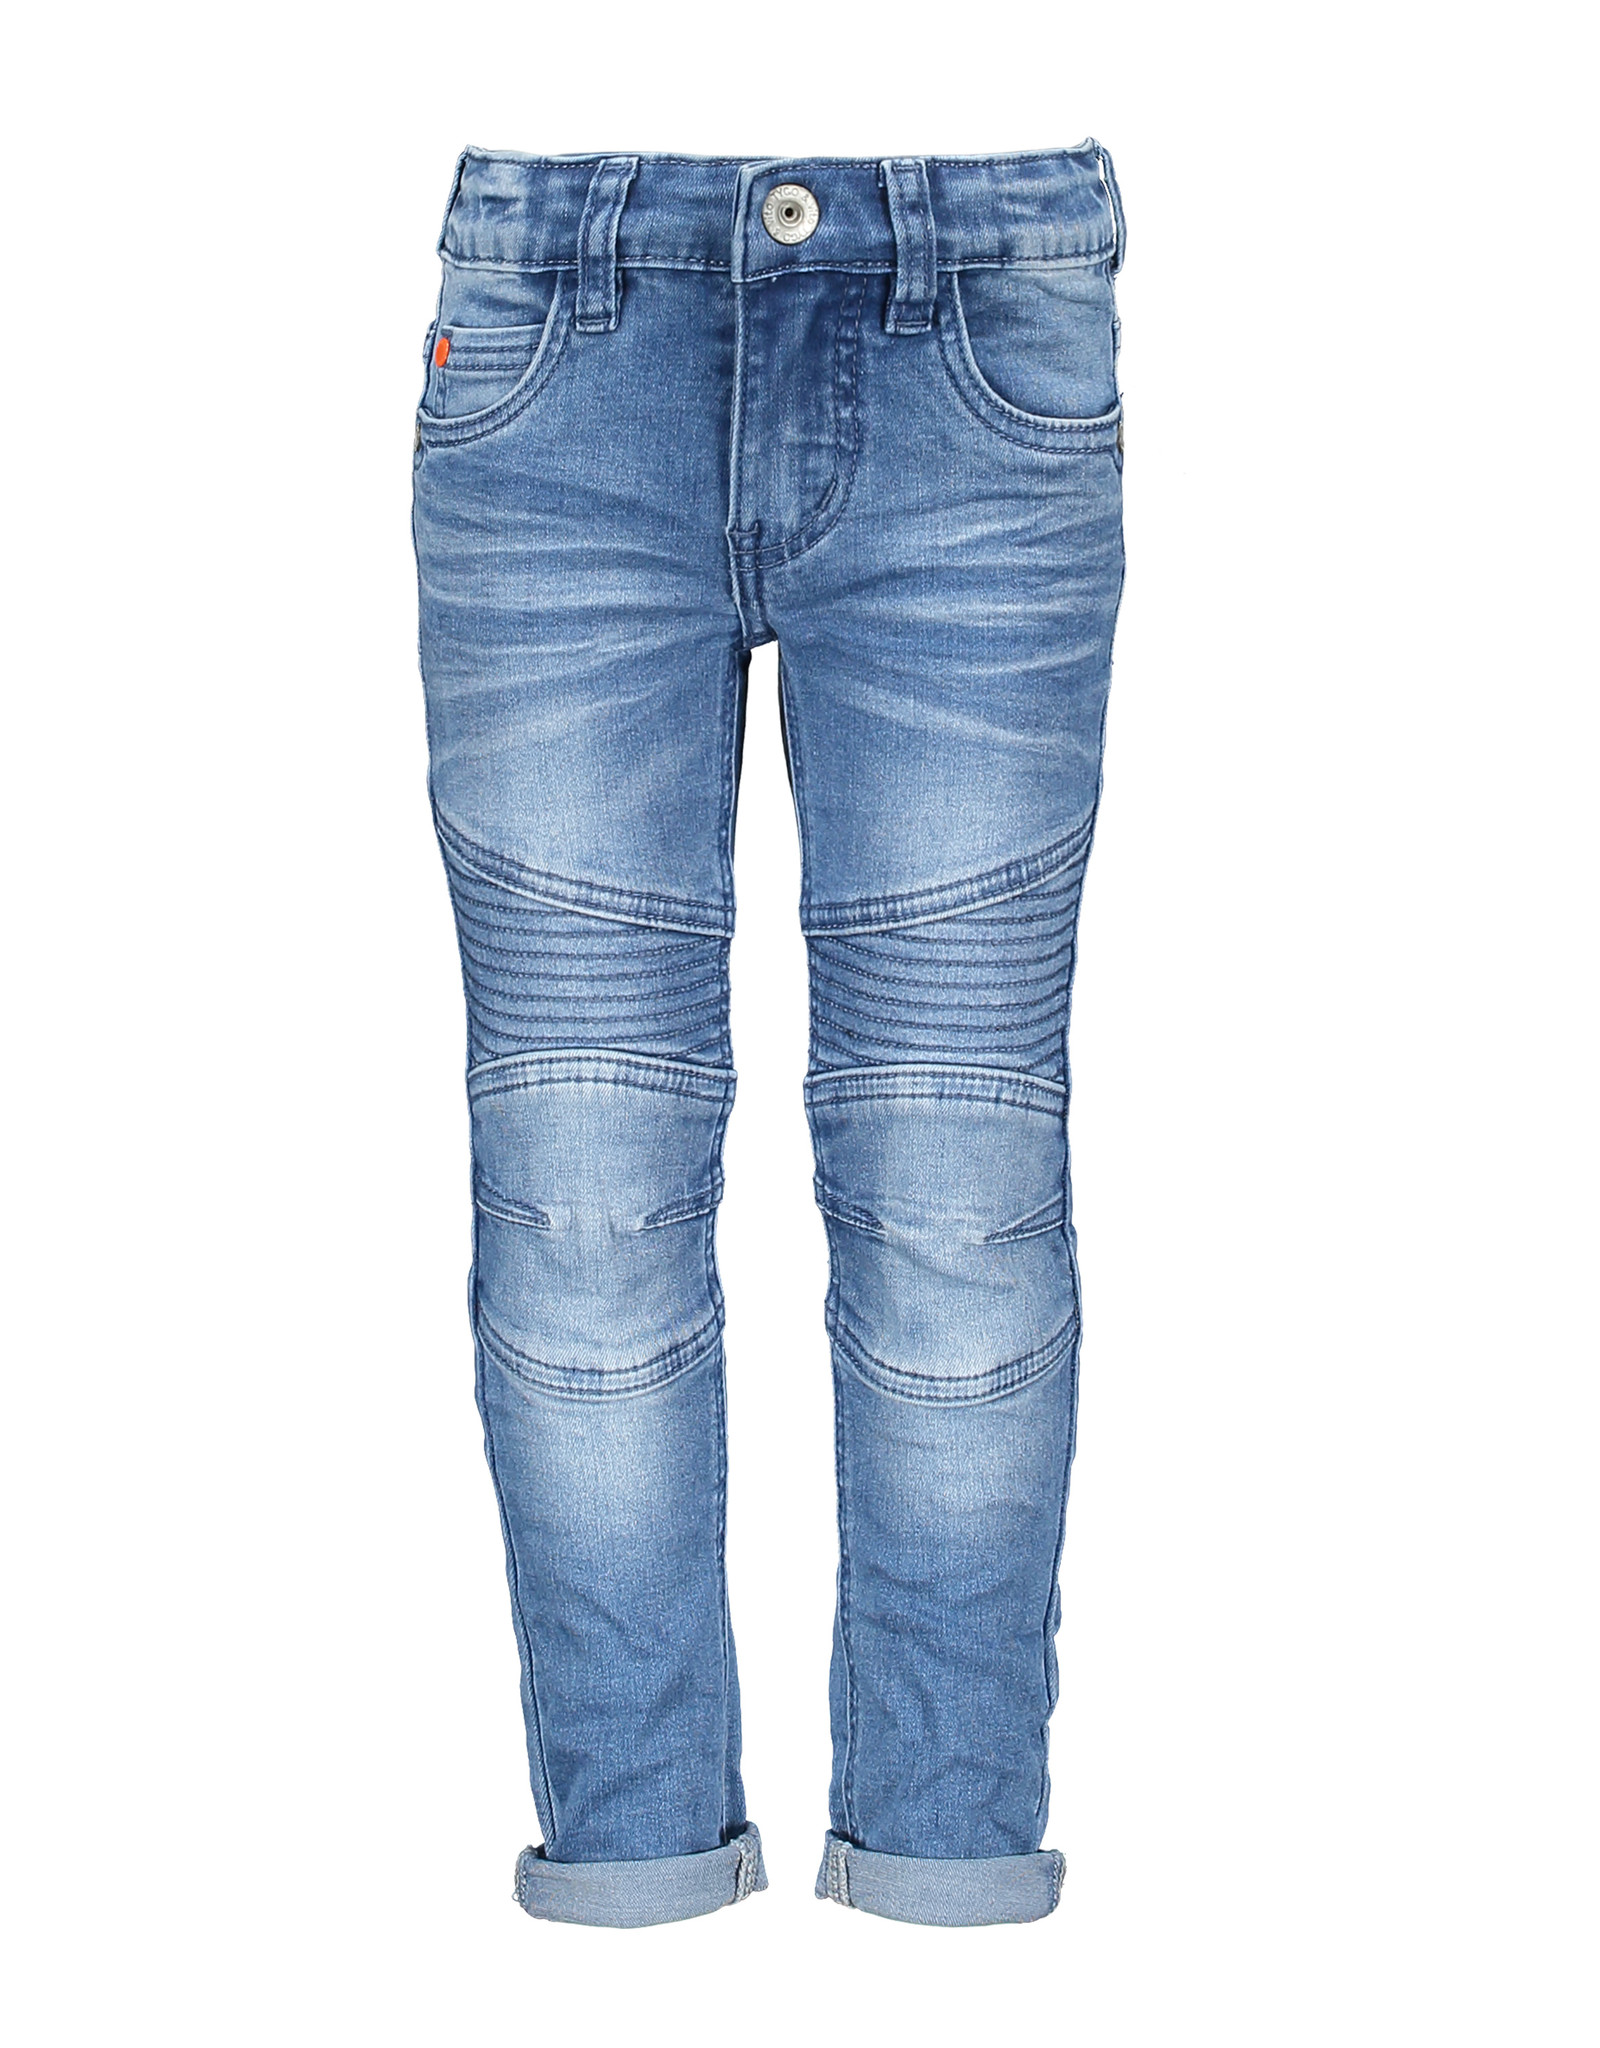 Tygo & Vito T&v jeans stretch denim fancy kneeparts